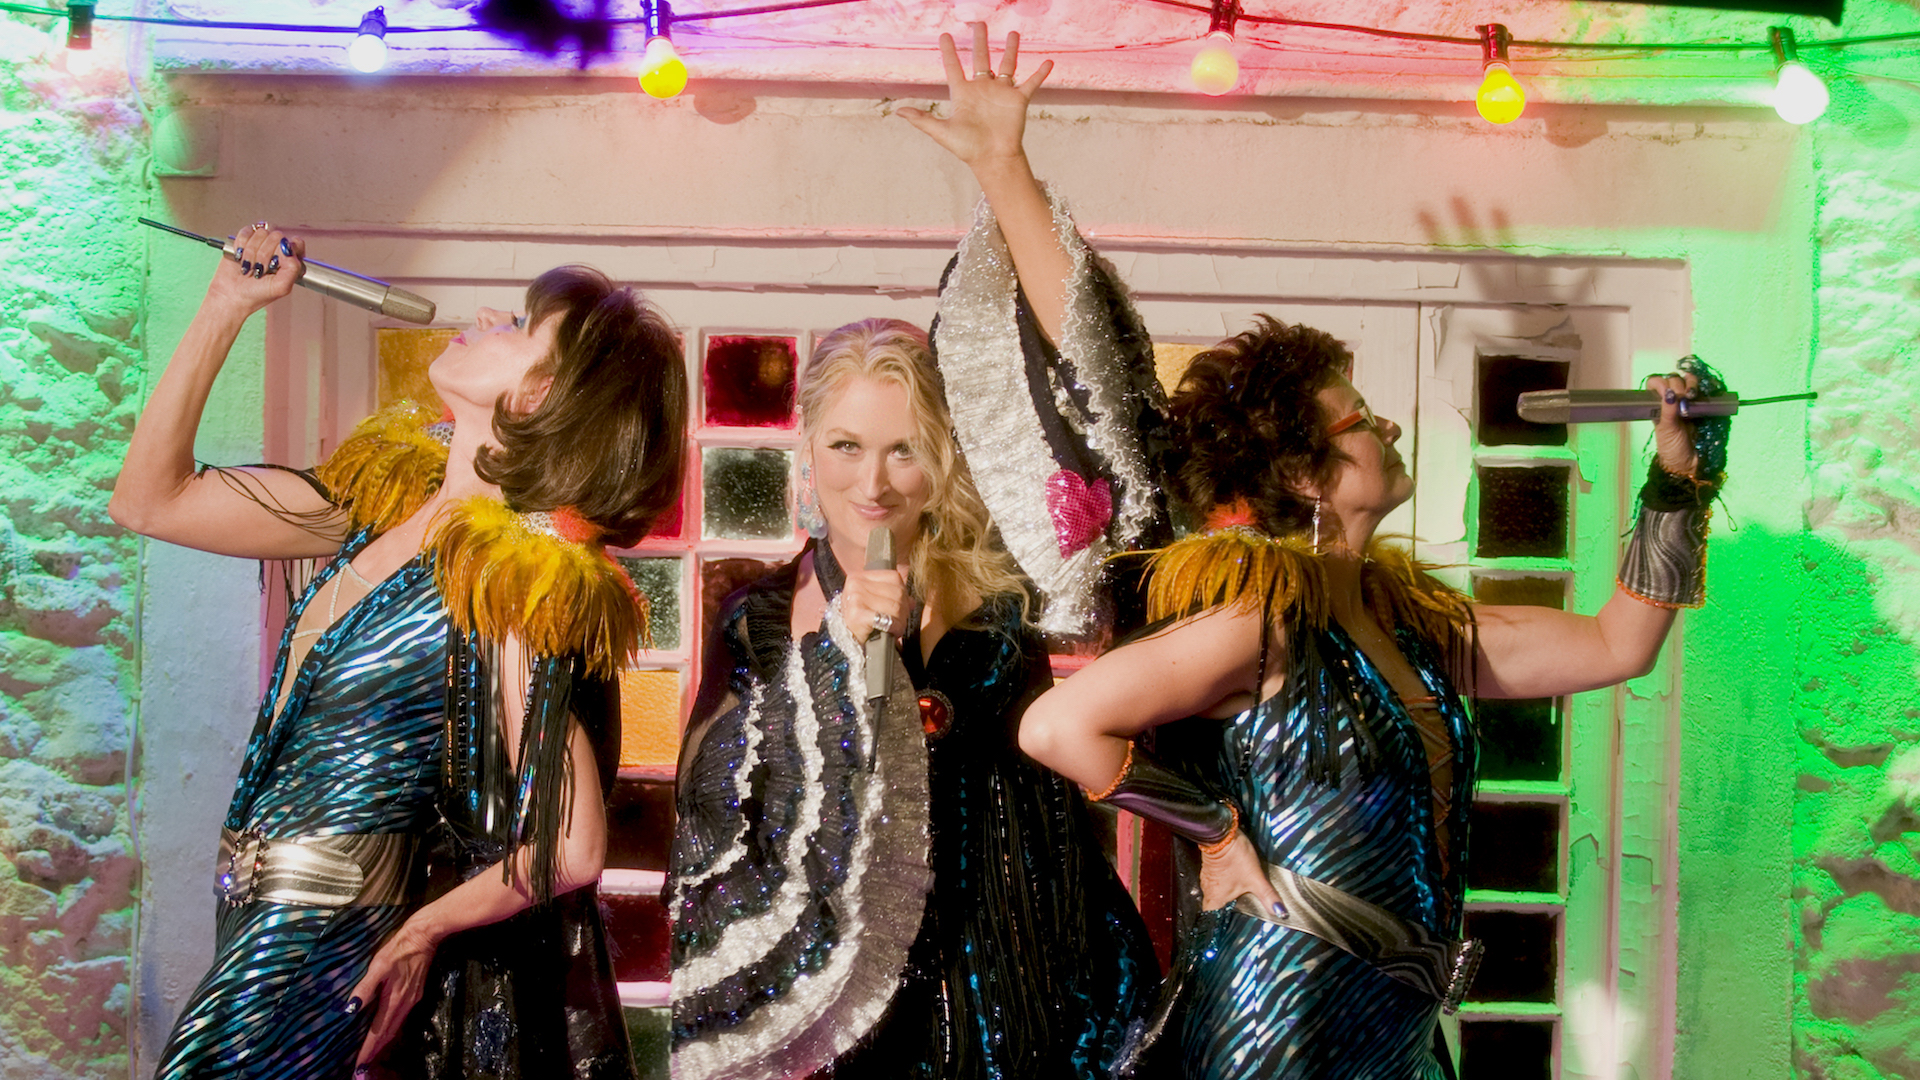 Meryl Streep, Christine Baranski and Julie Walters perform an ABBA song in costume in Mamma Mia